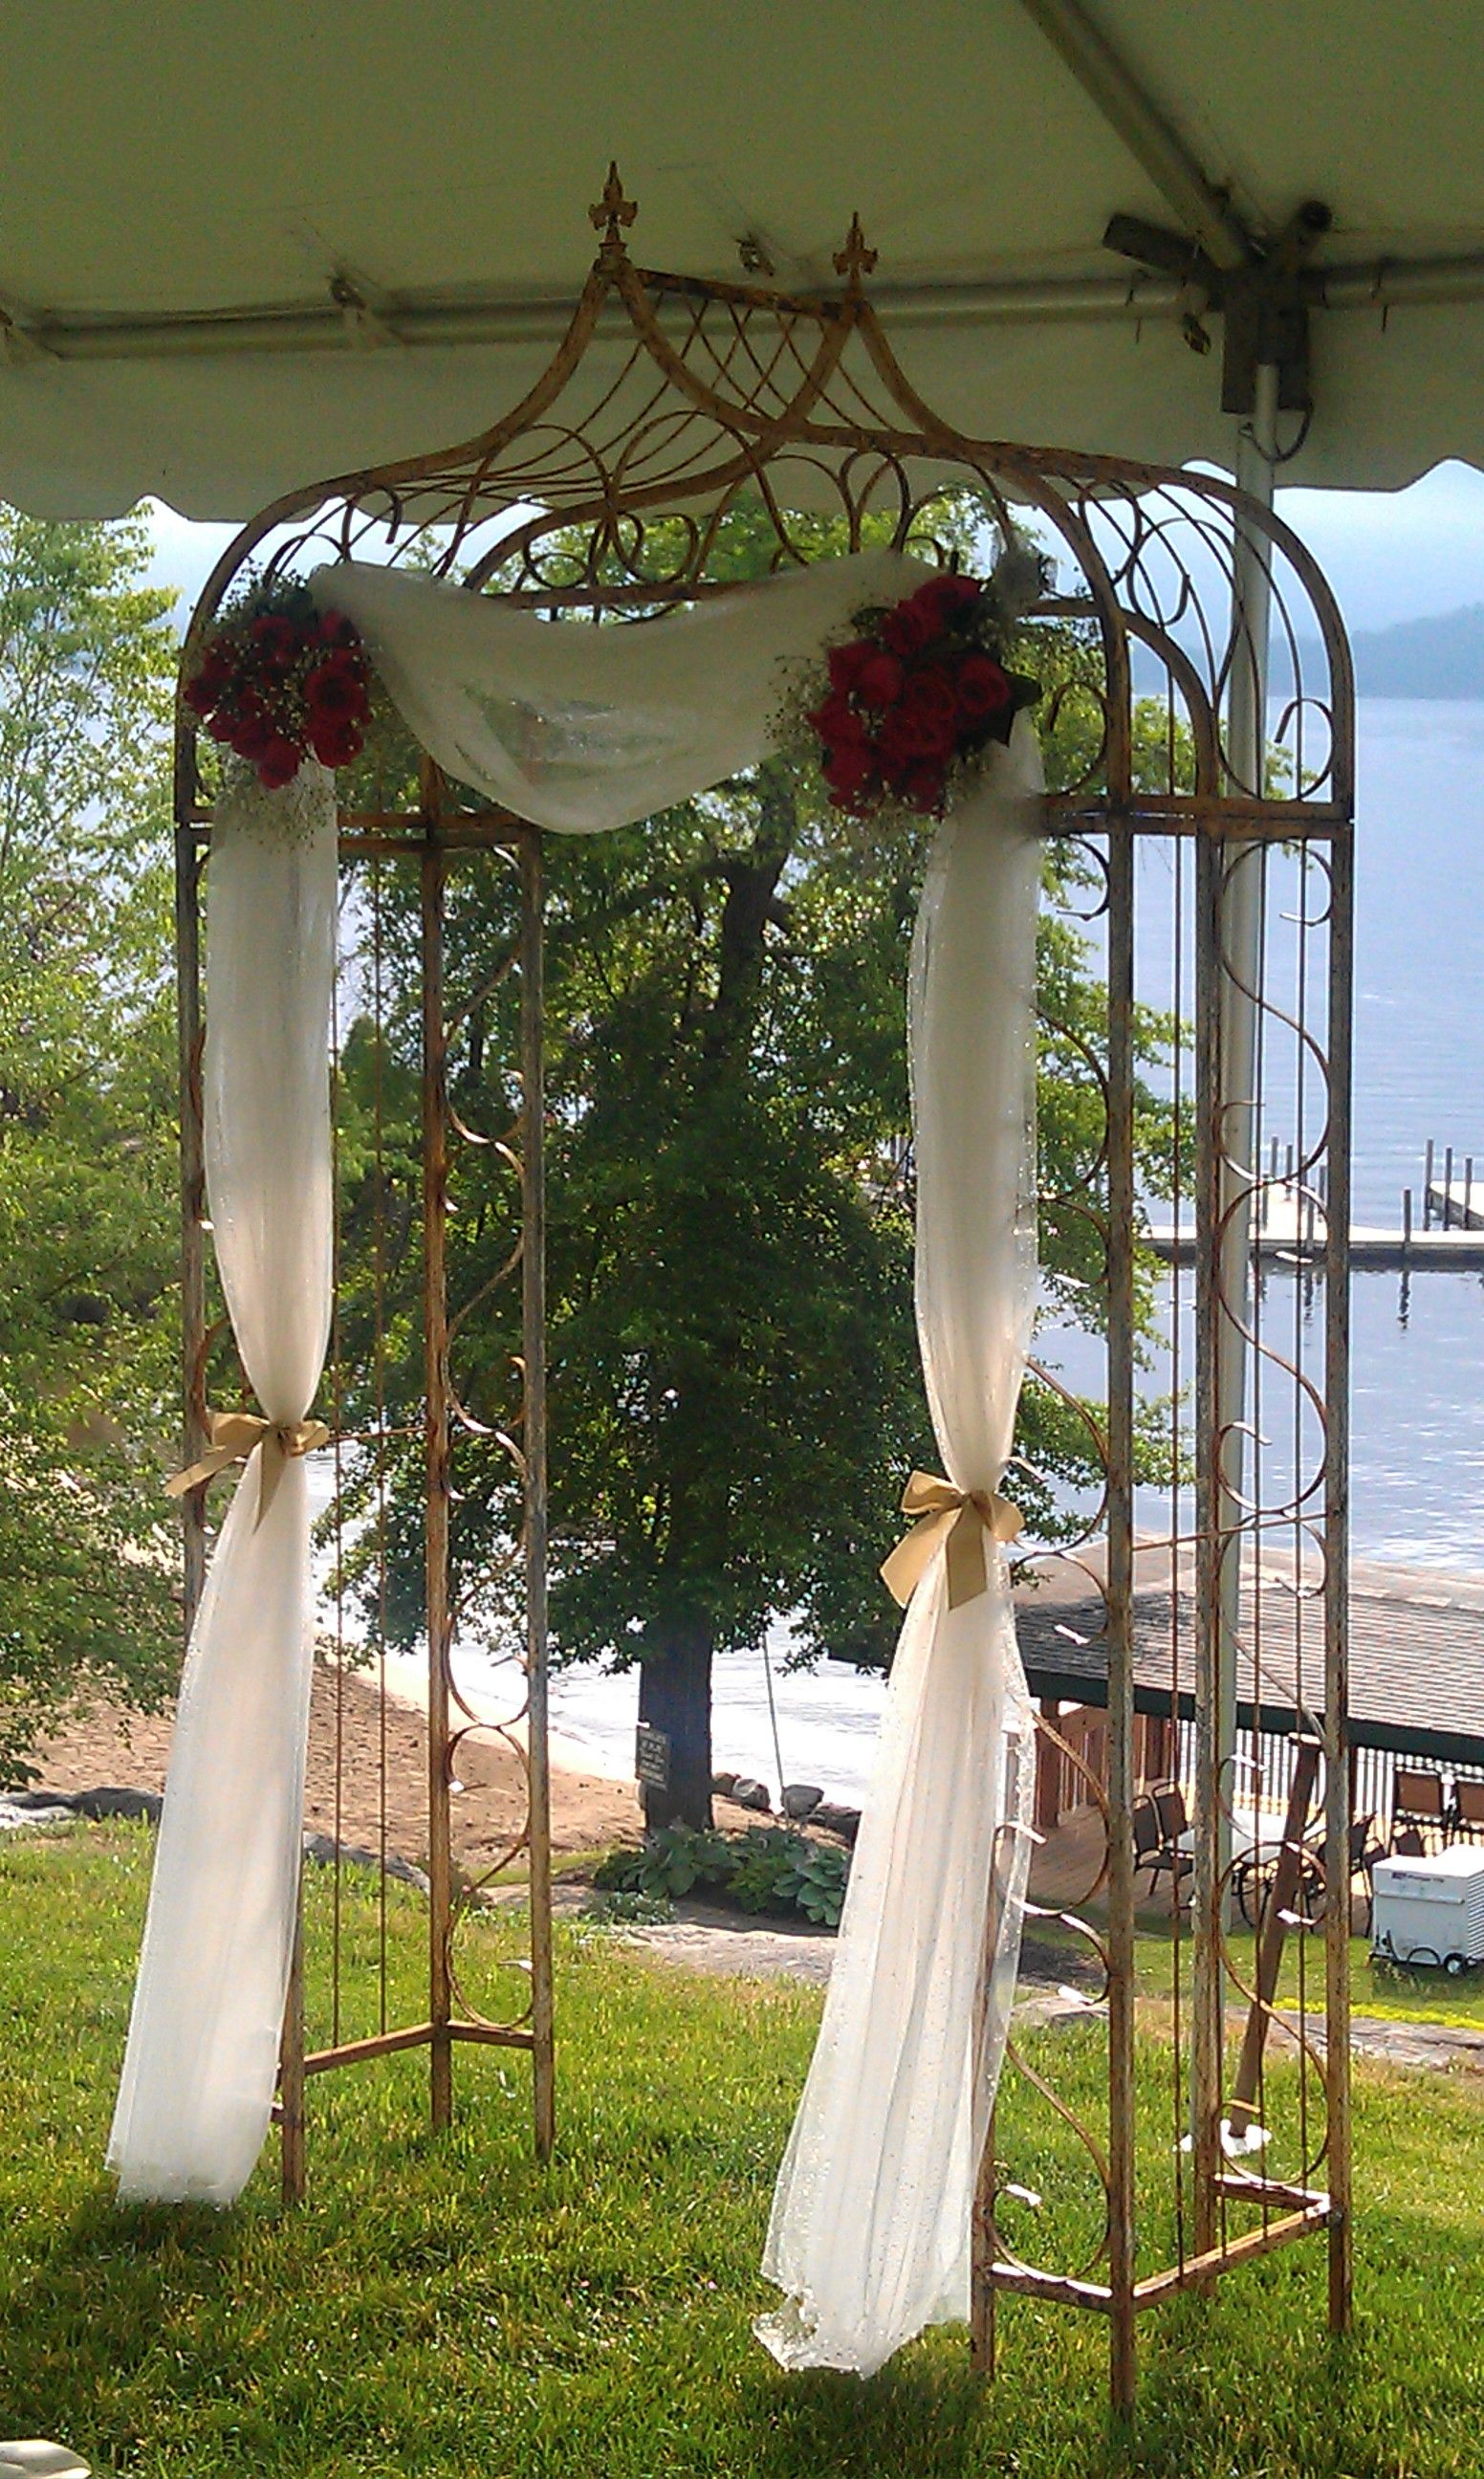 Vintage metal wedding arch | wedding arch | Pinterest | Metal ...